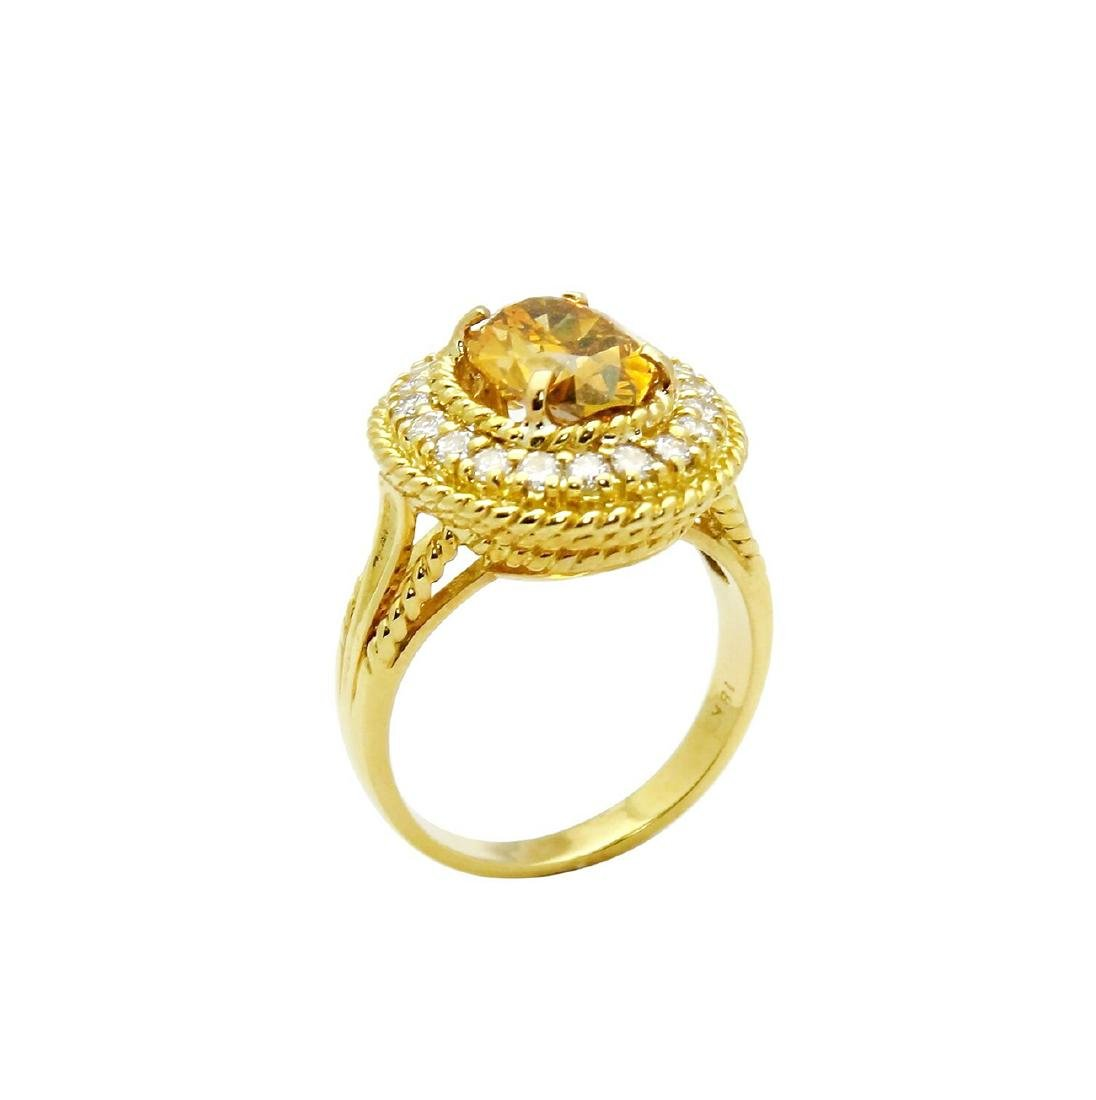 Tiffany & Co. 18K Gold GIA 2.51TCW Yellow Diamond Ring